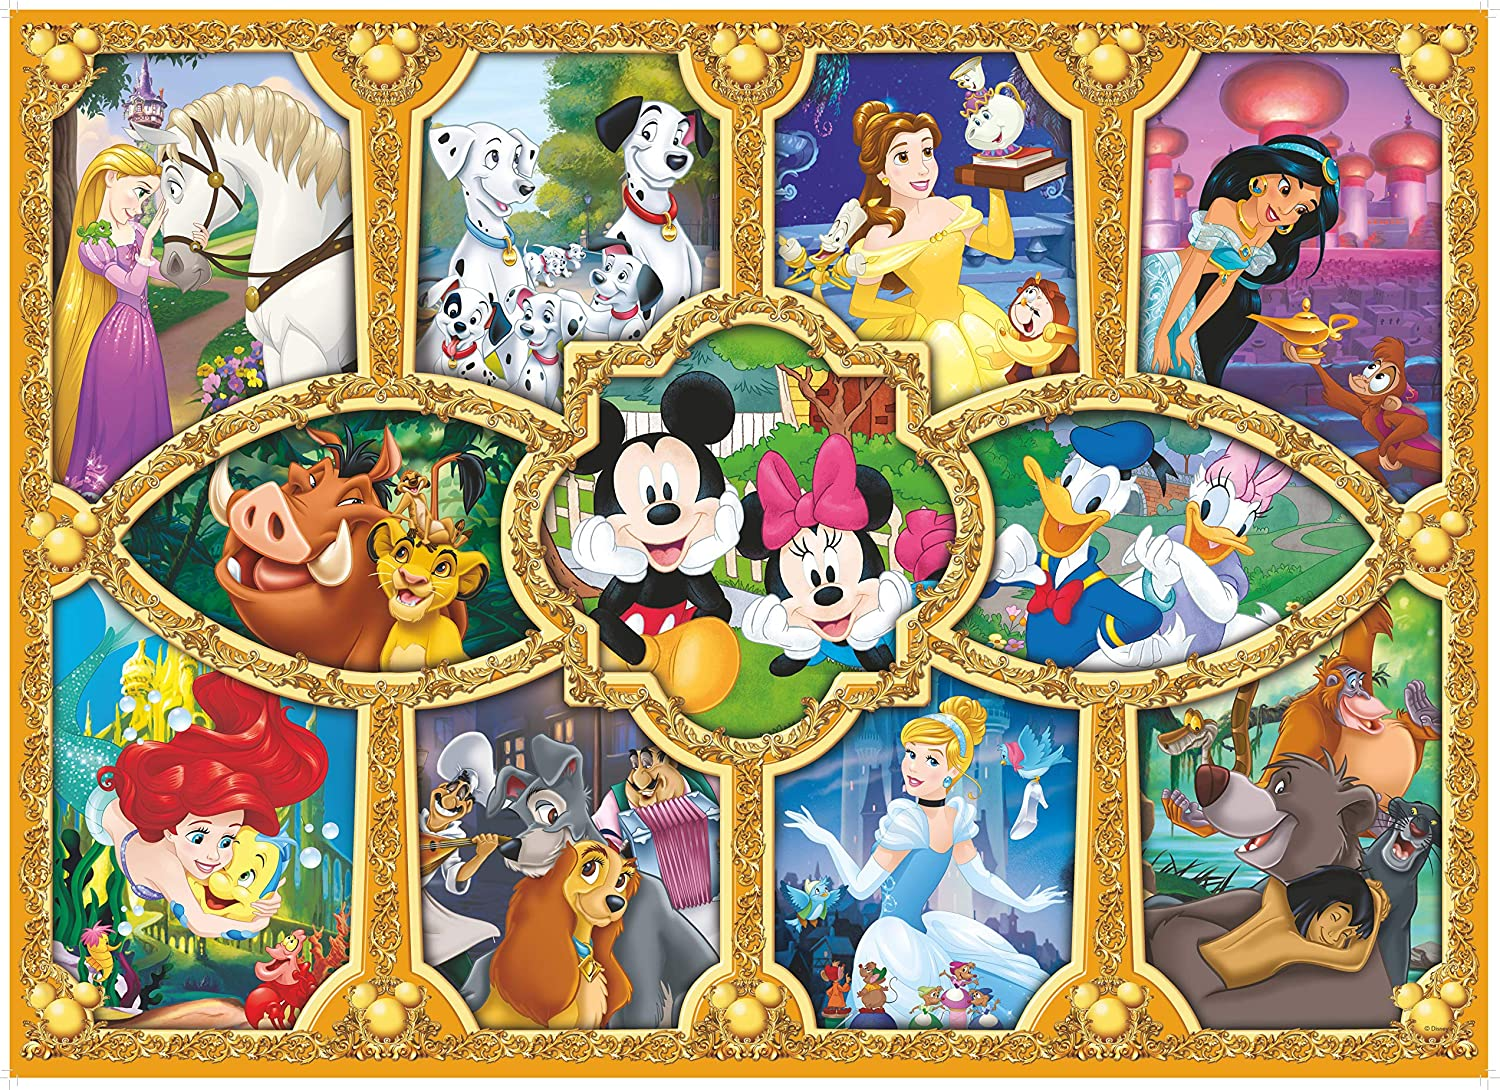 King 5279 Disney Magical Moments Jigsaw Puzzle 1000-Piece